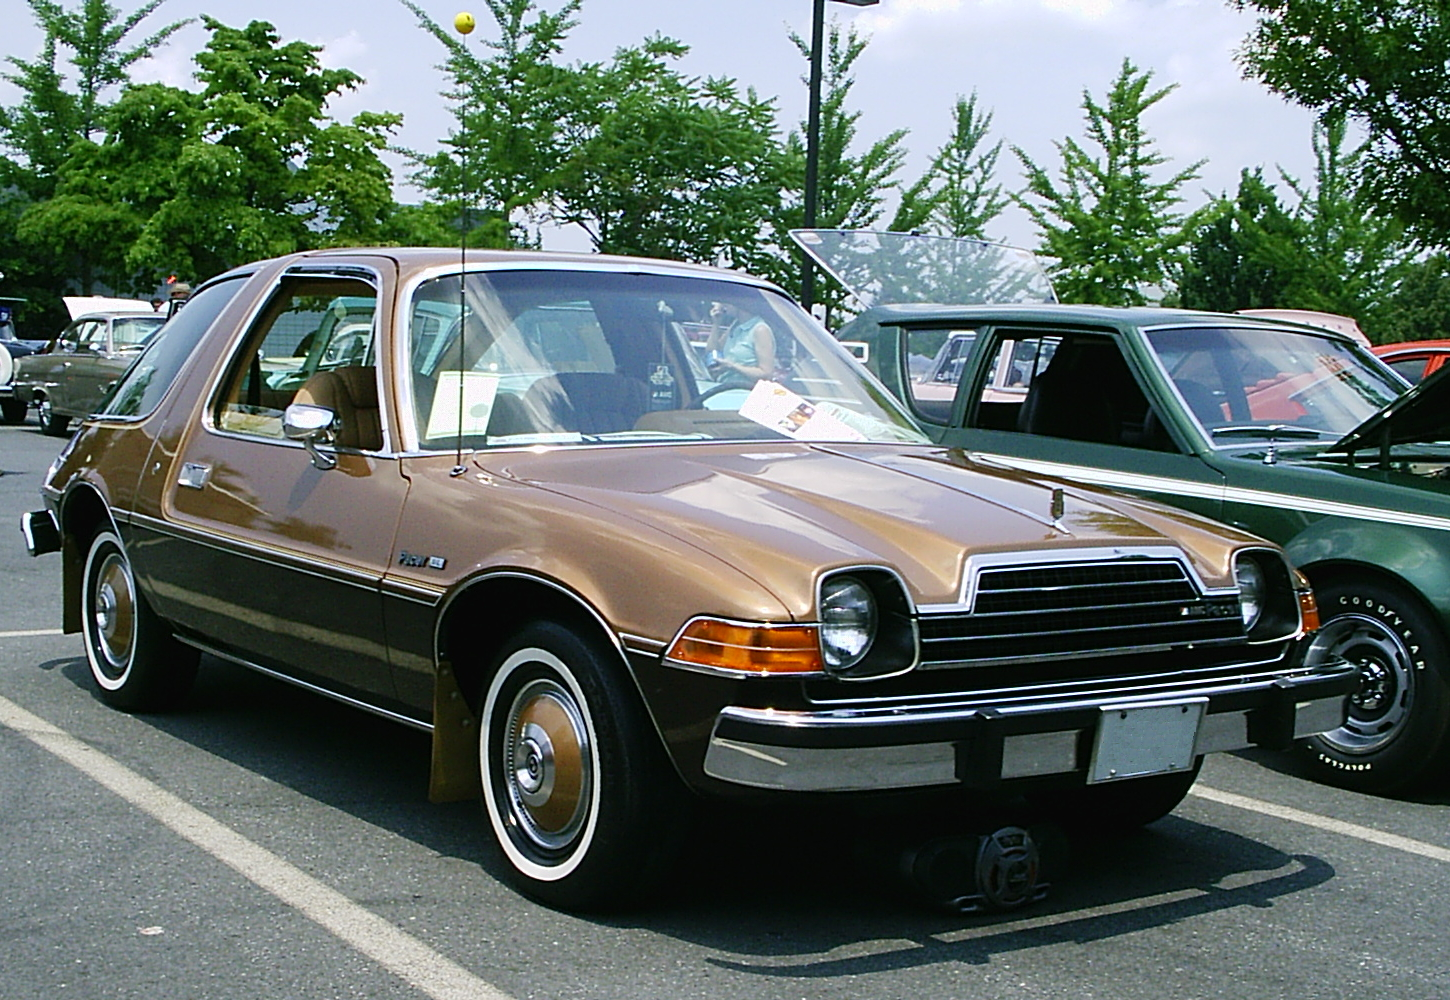 Honda Cars Of Concord >> 1979 AMC Pacer - Pictures - CarGurus